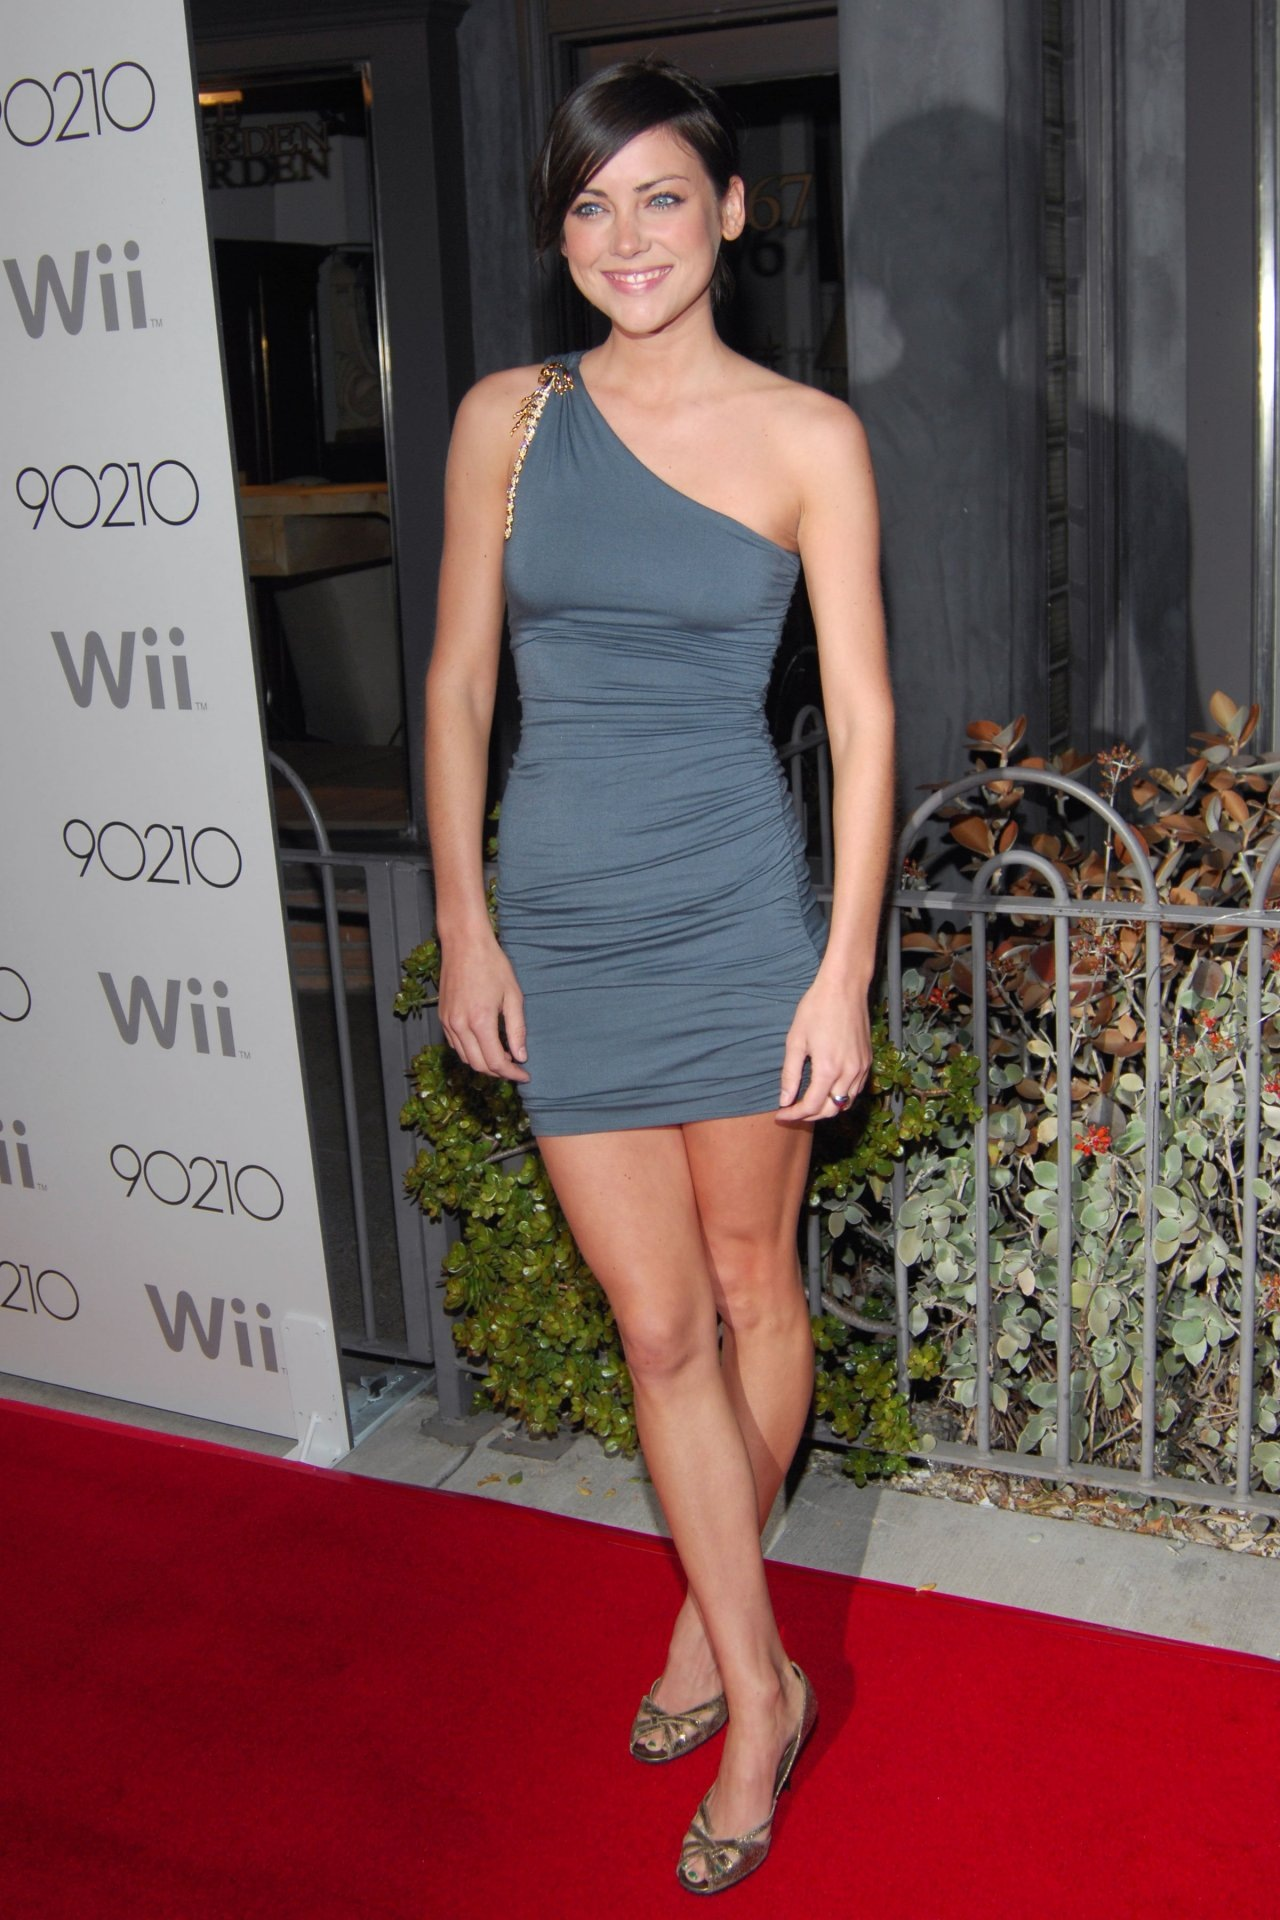 25 Hot Pictures Of Jessica Stroup - Joy Meachum In Iron